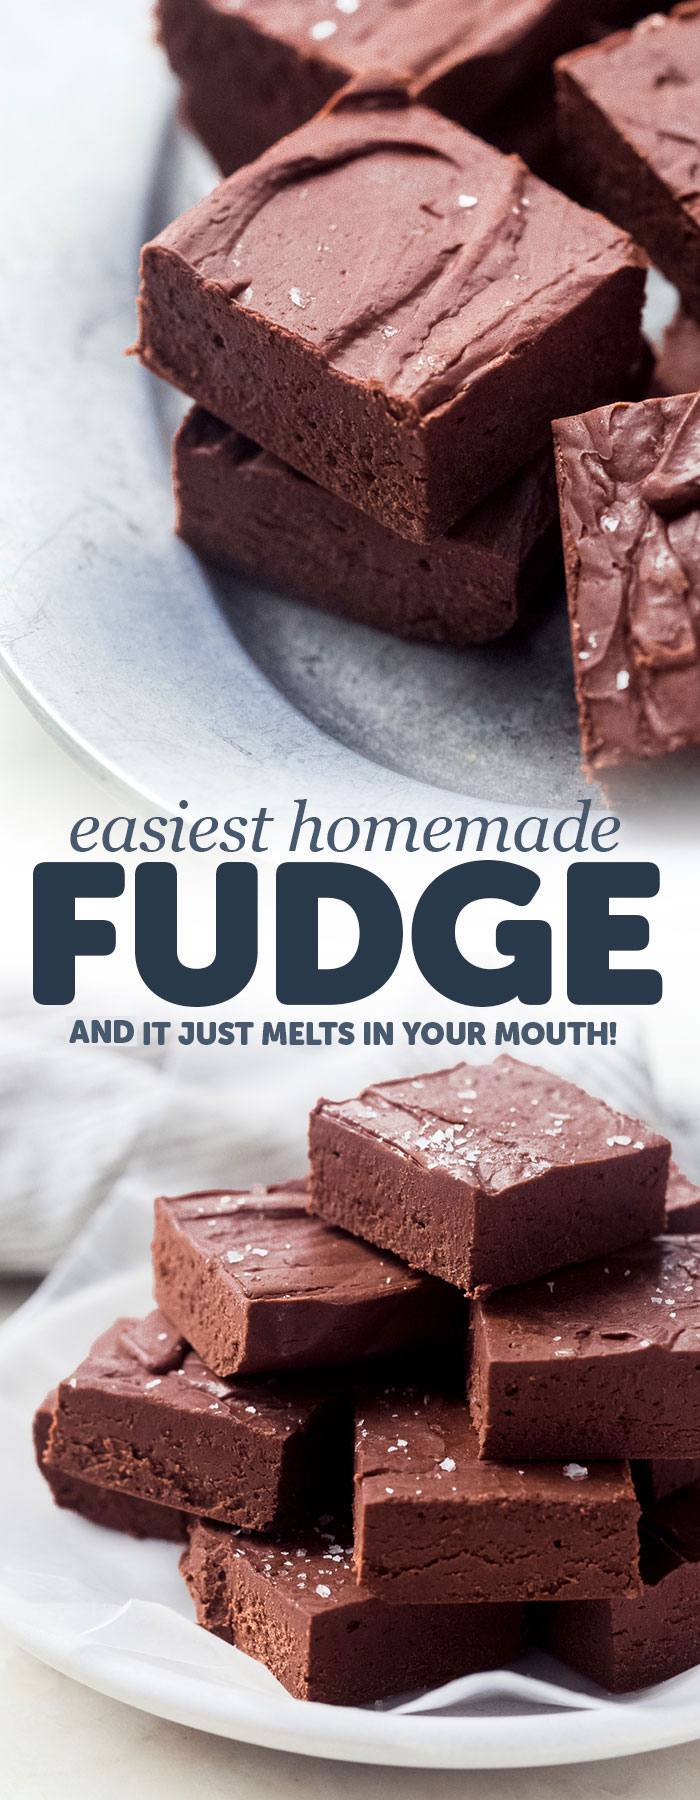 Melt in Your Mouth Homemade Fudge - delicious squares that take just 15 minutes of hands on time! Homemade fudge is a great gift for family and friends! #fudge #fudgerecipe #homemadefudge #chocolatefudge | Littlespicejar.com